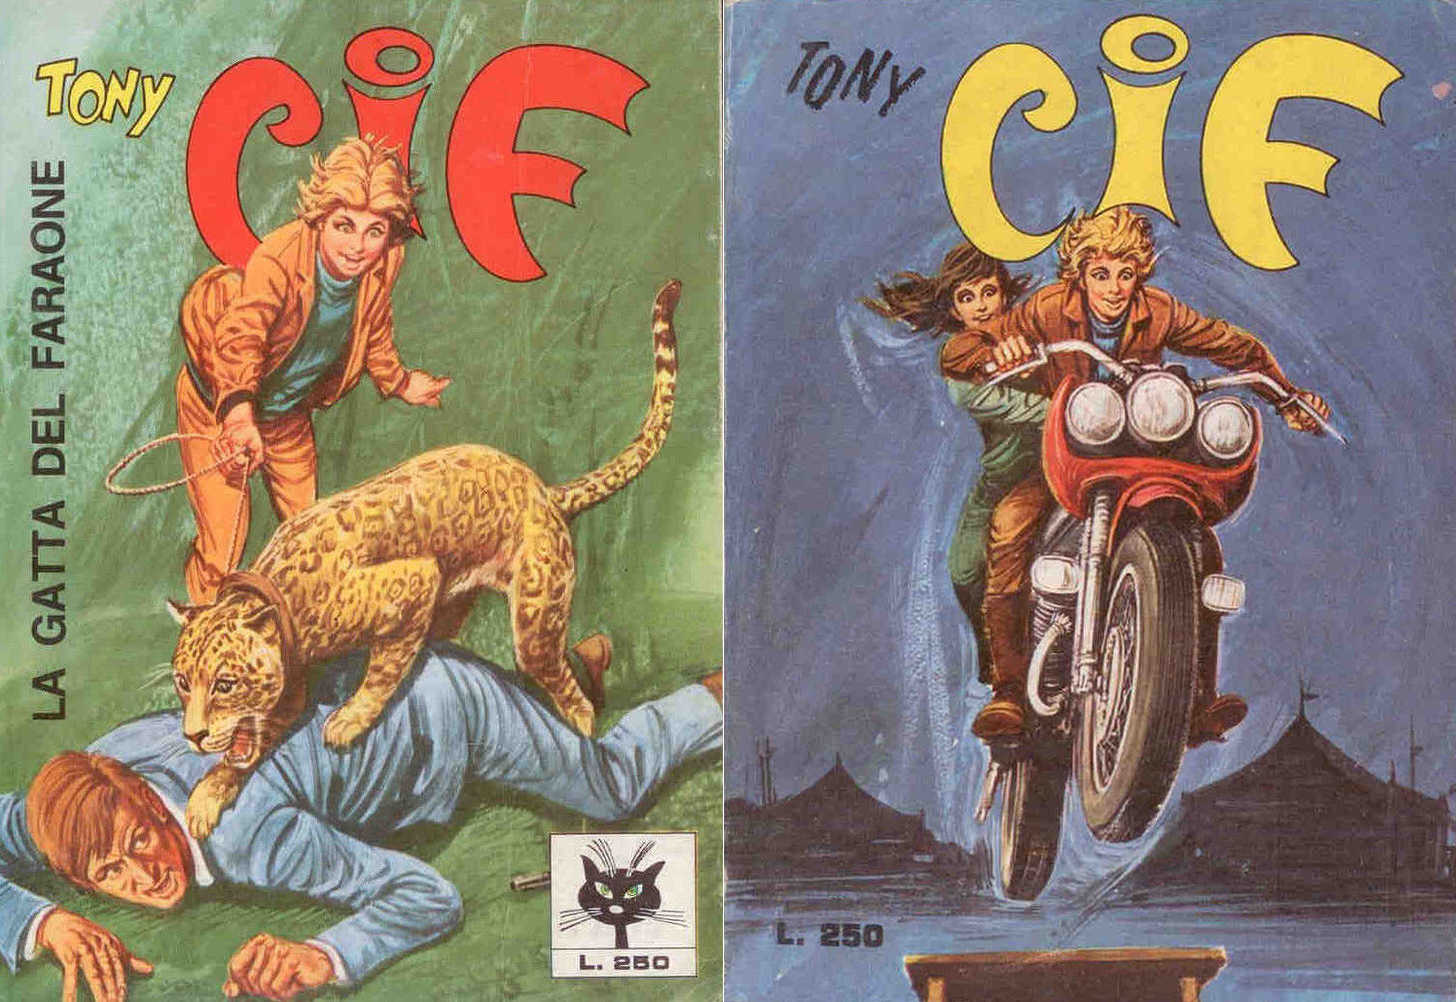 Fumetto Italiano Vintage Tony Cif